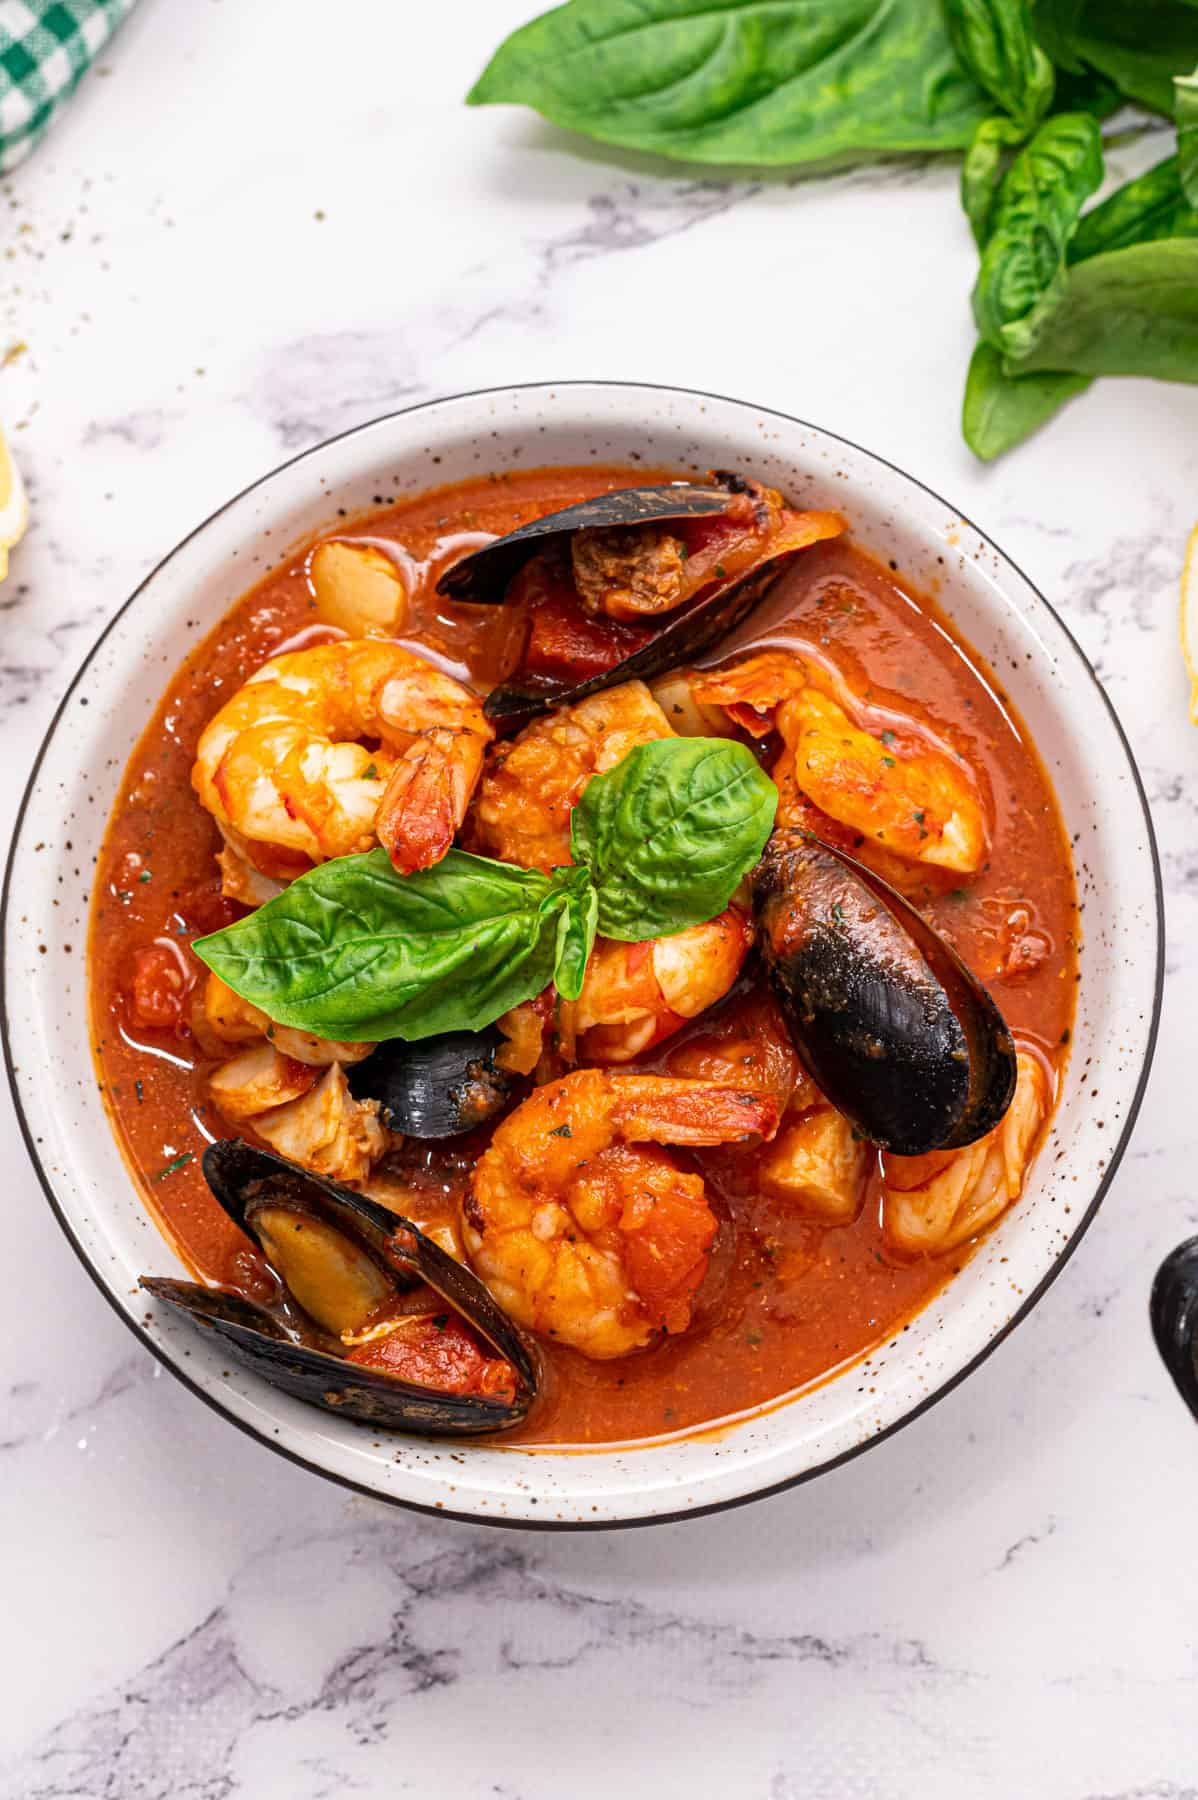 A bowl of cioppino stew.